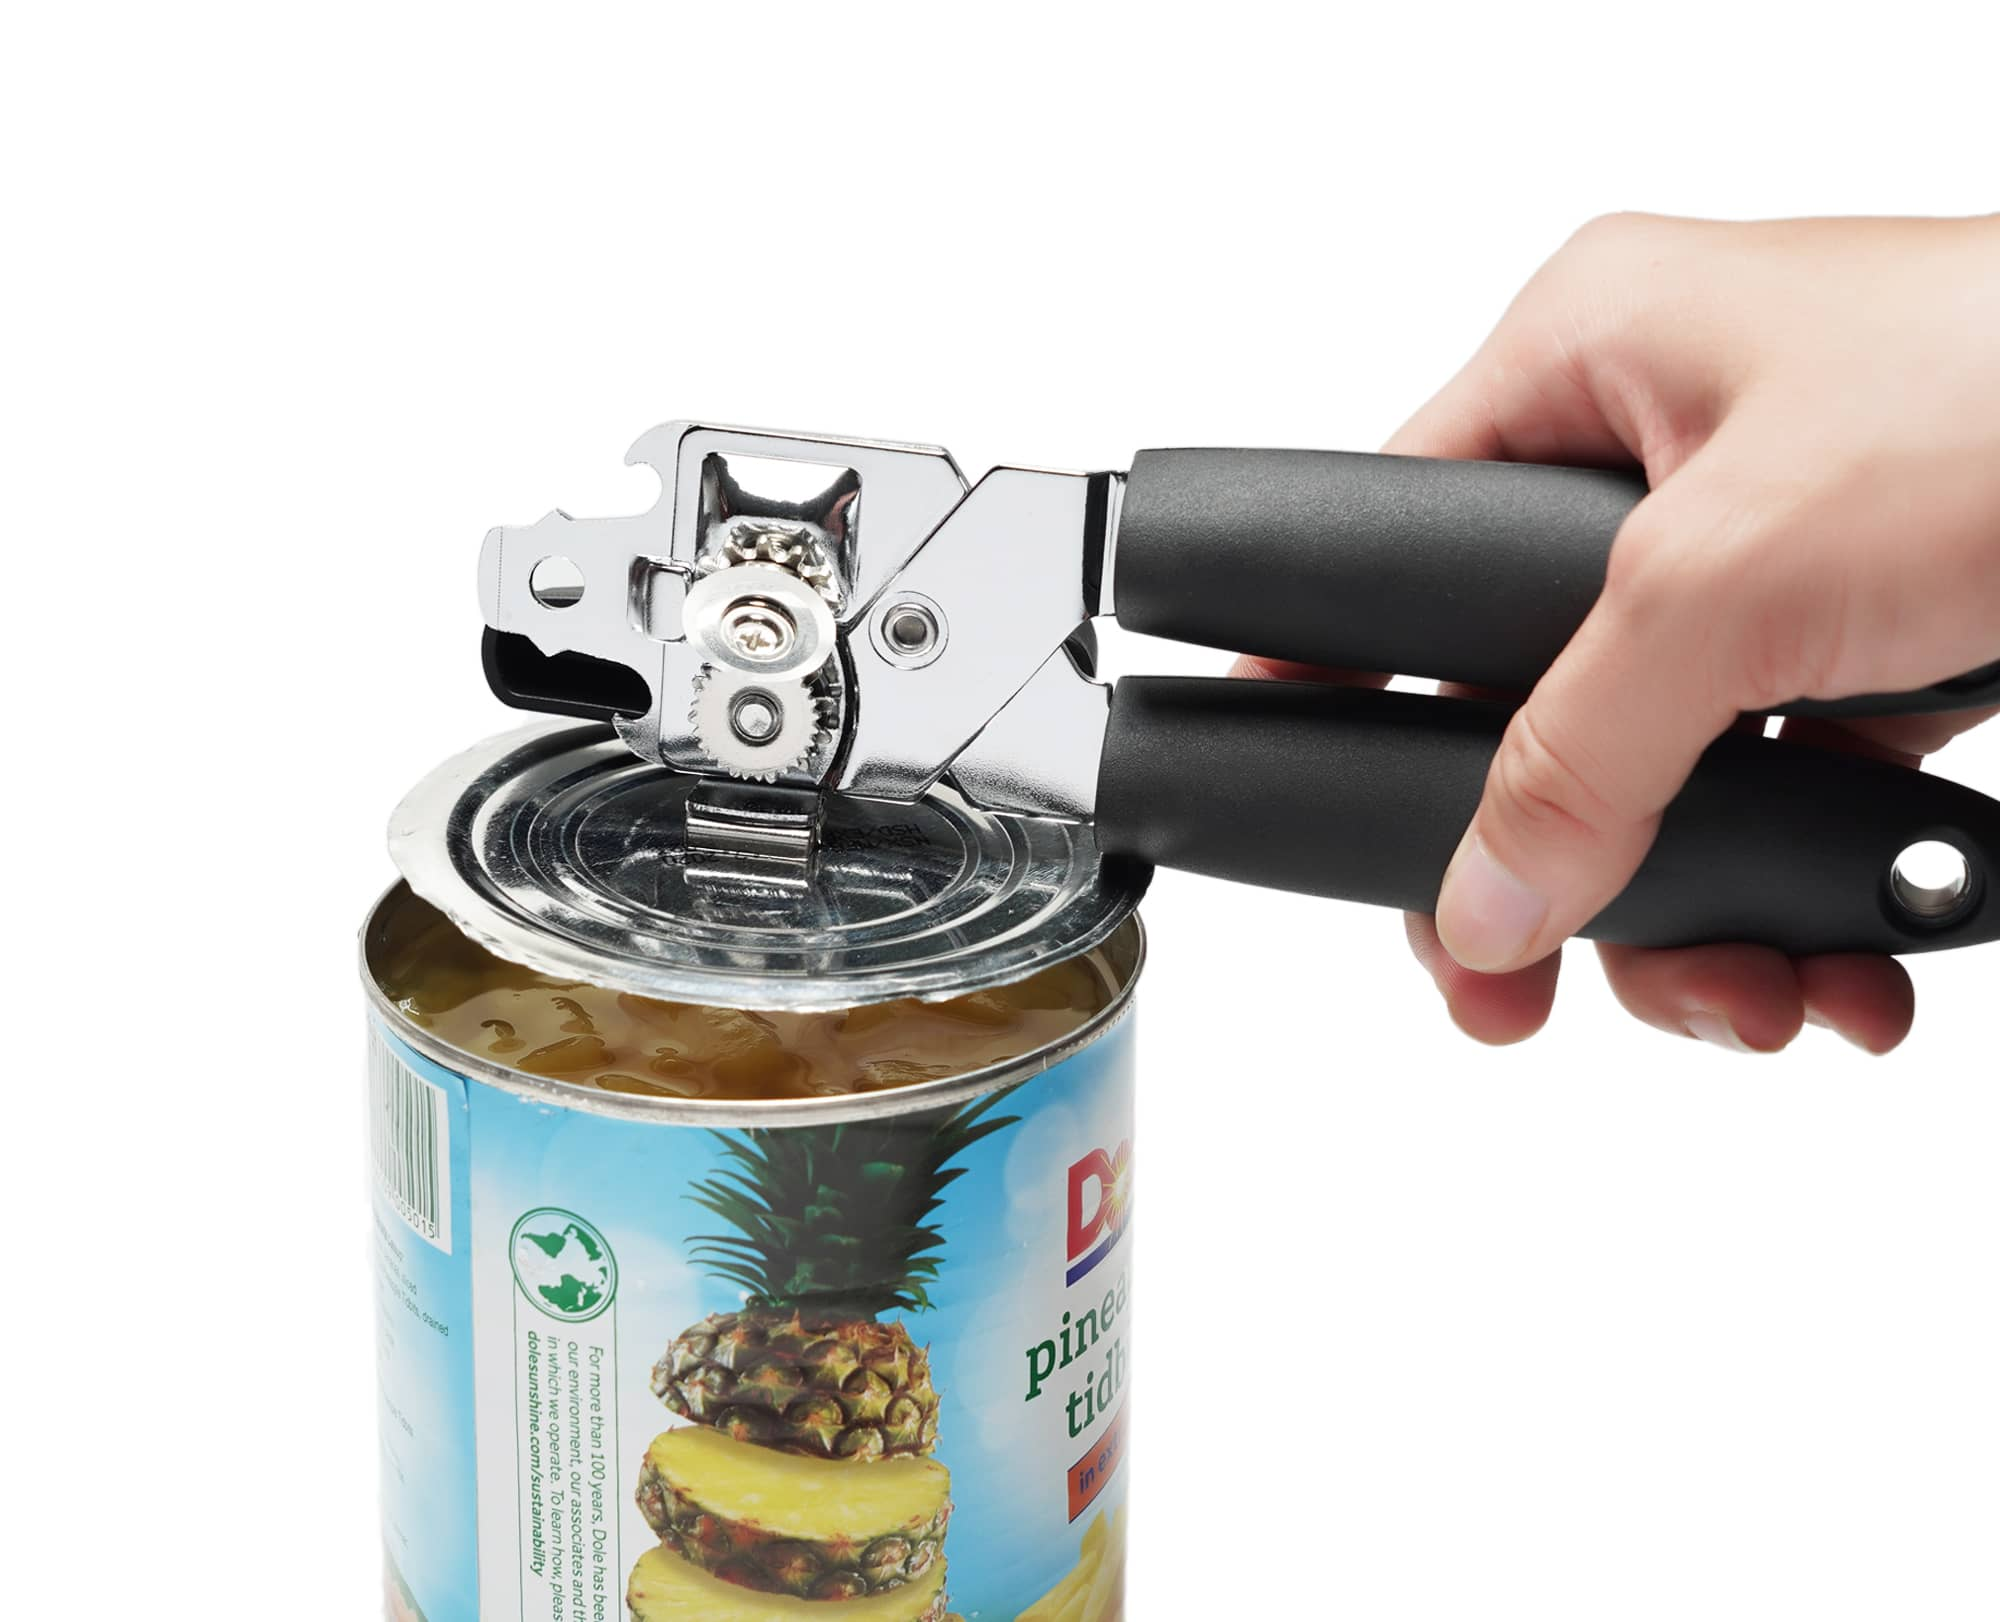 Use Magnet lift the can's lid with Benchusch Magnet Classia Can Opener